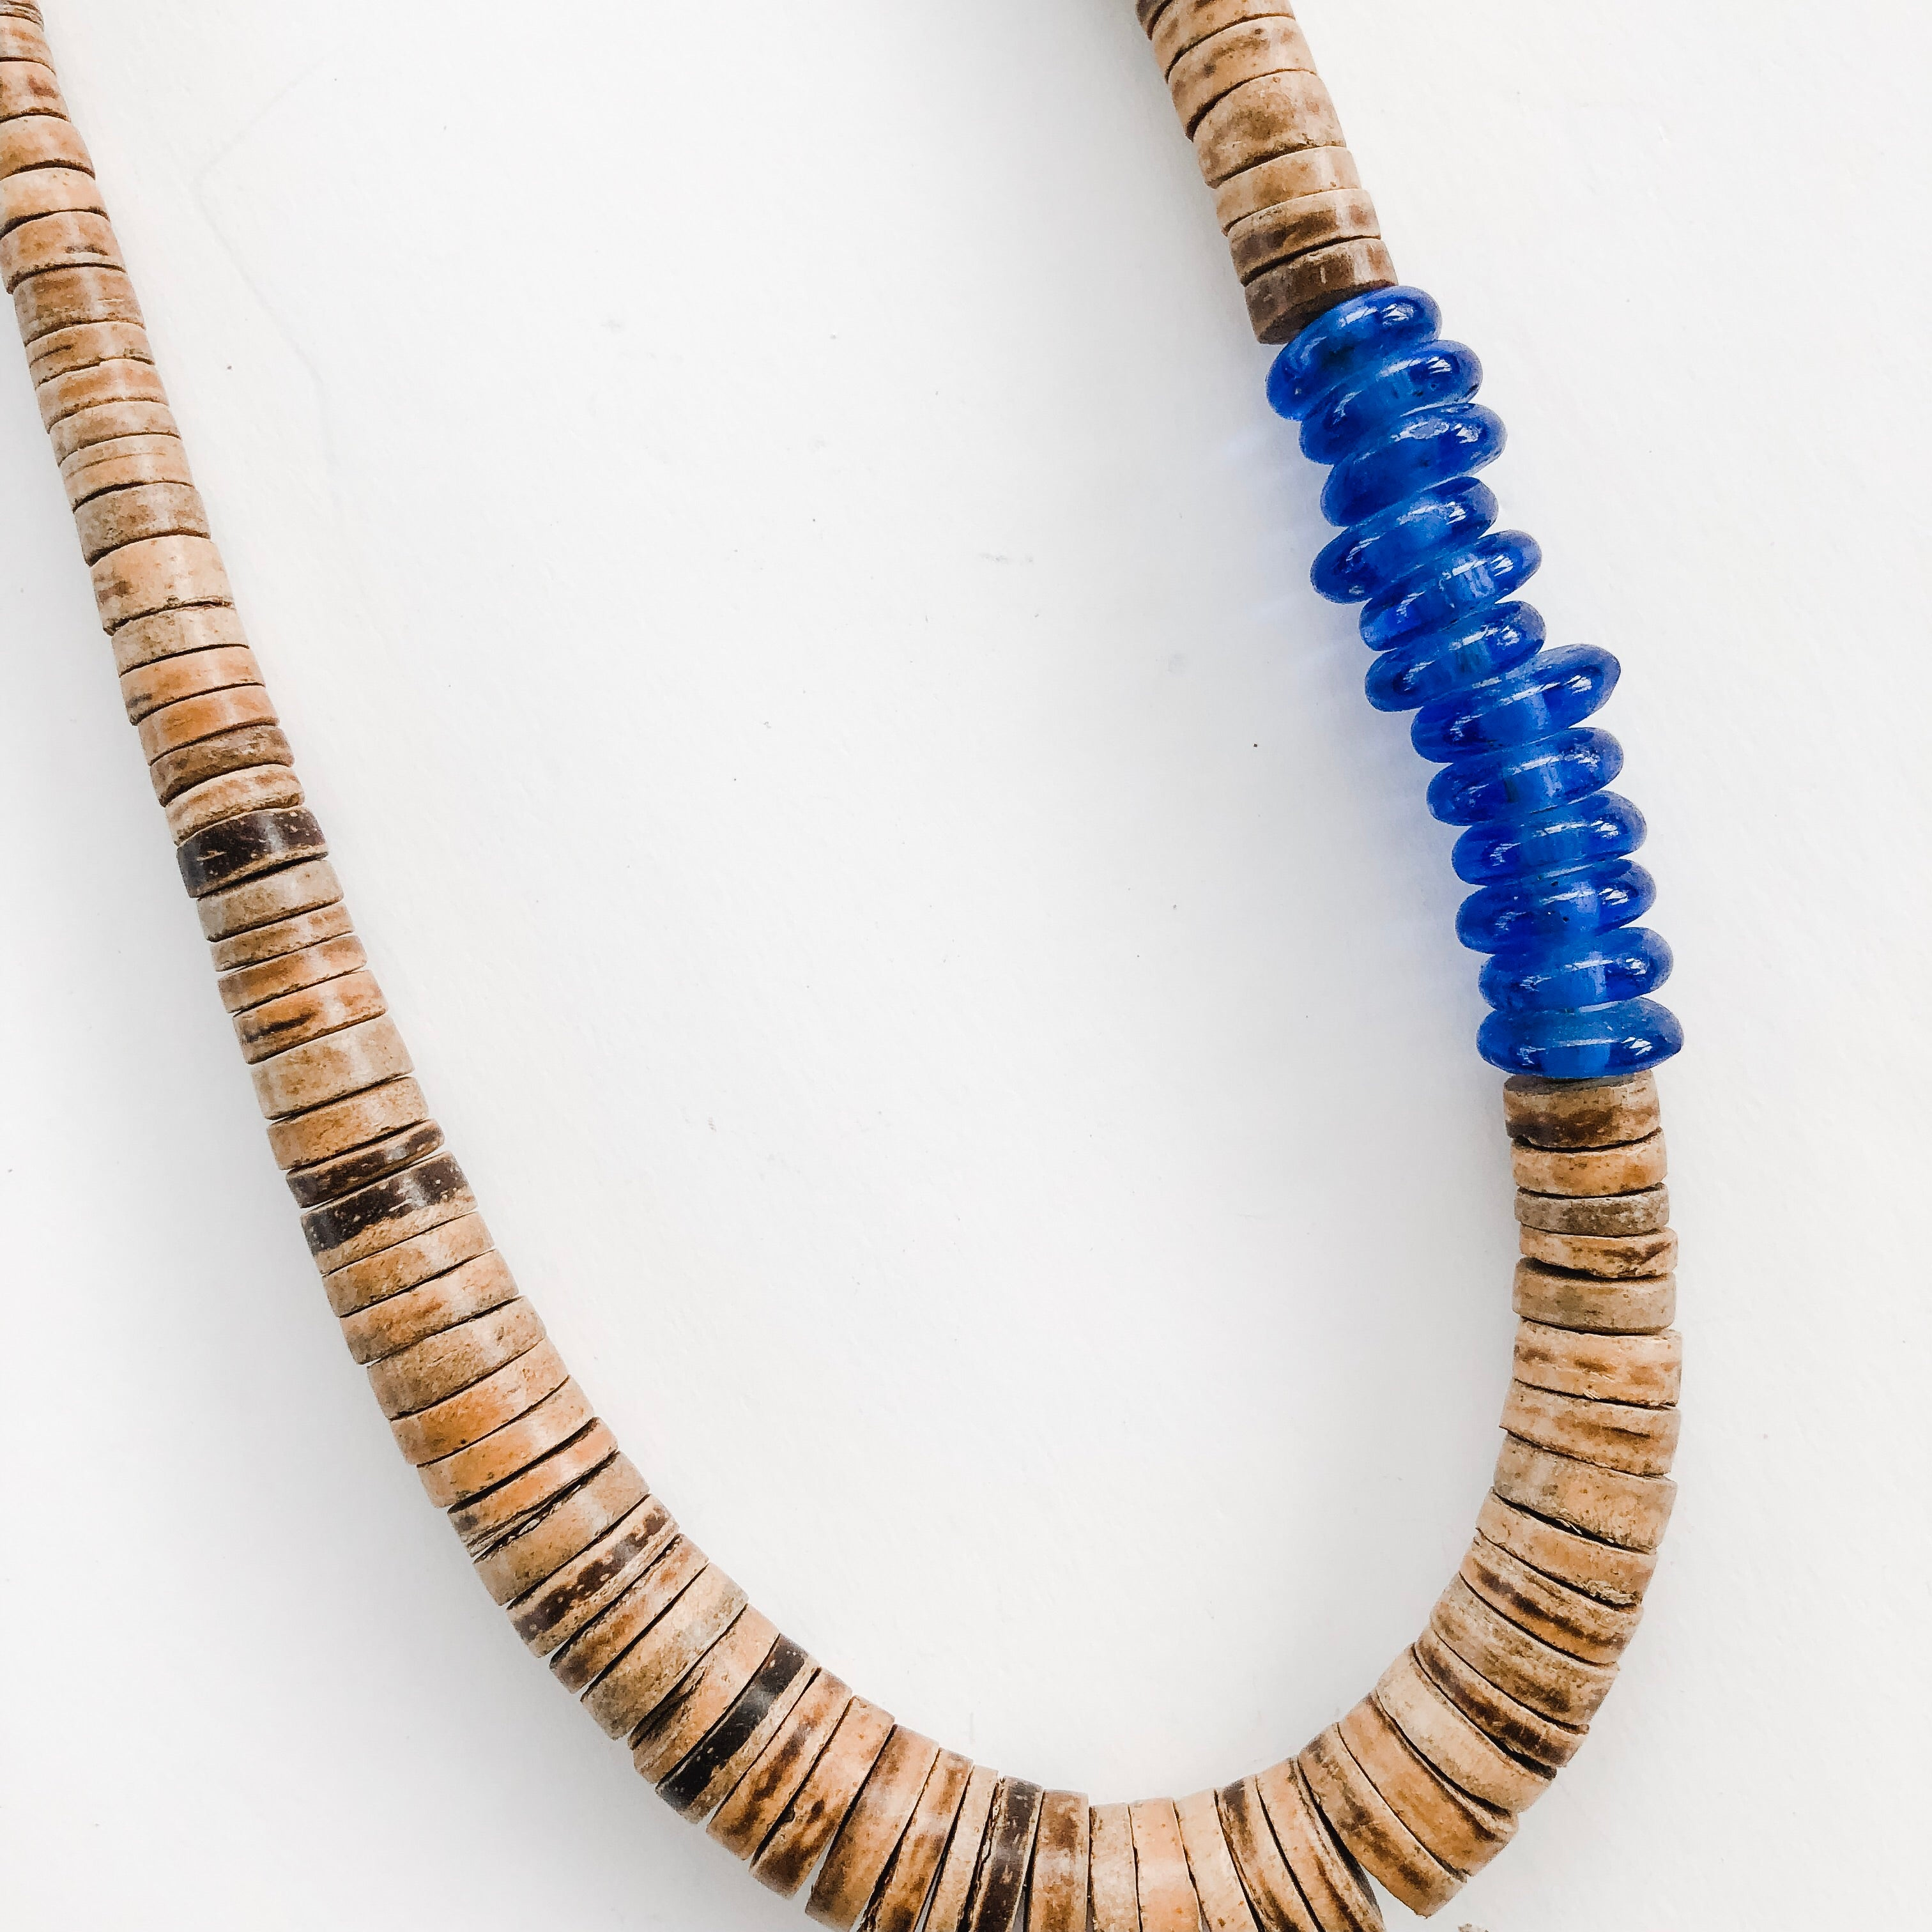 Simply Stated Coconut Necklace with Blue Recycled Glass